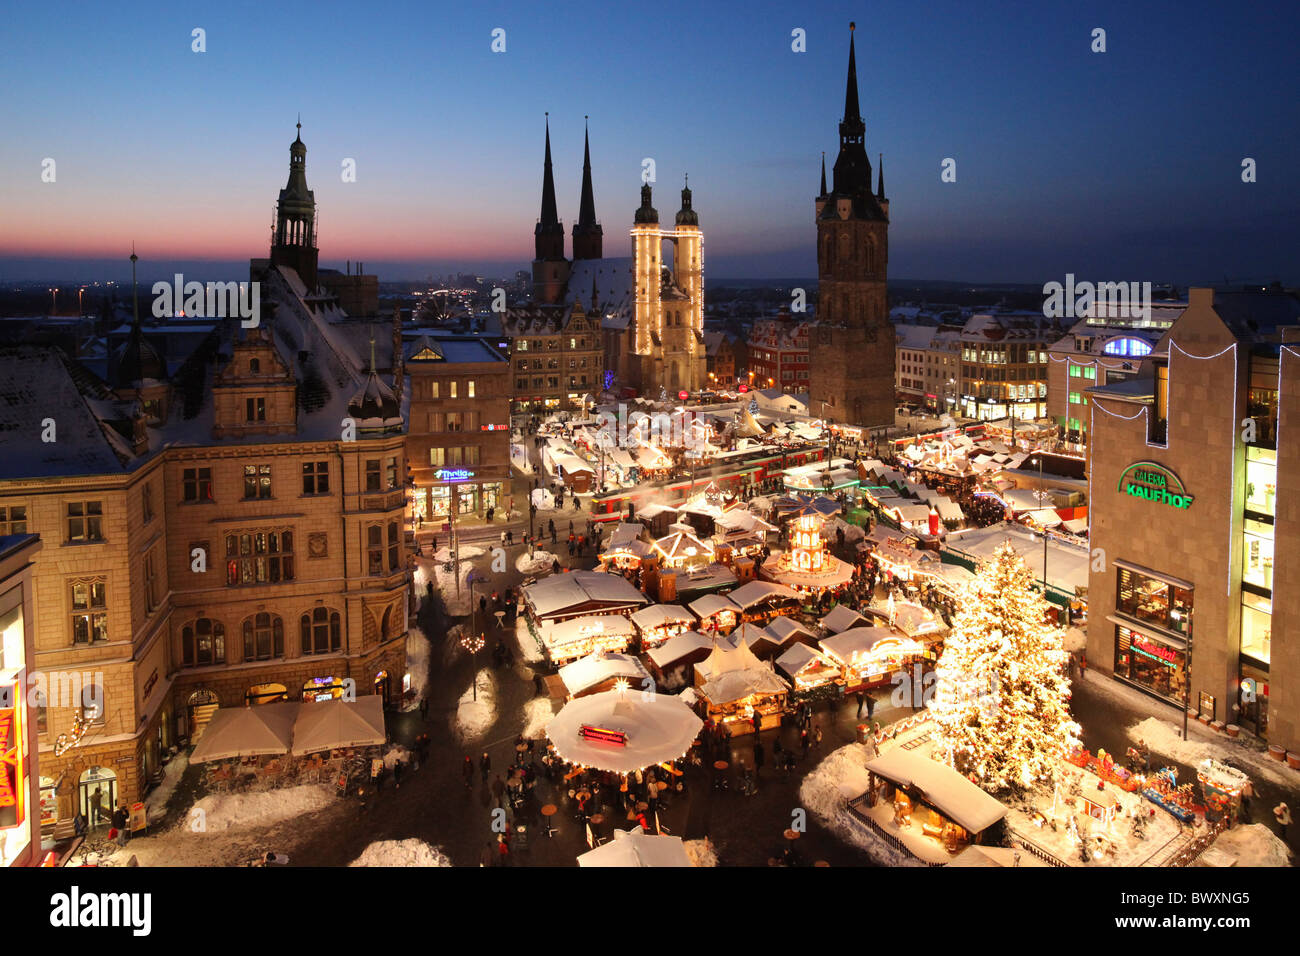 christmas market in halle saale germany weihnachtsmarkt 2010 in stock photo 33164437 alamy. Black Bedroom Furniture Sets. Home Design Ideas